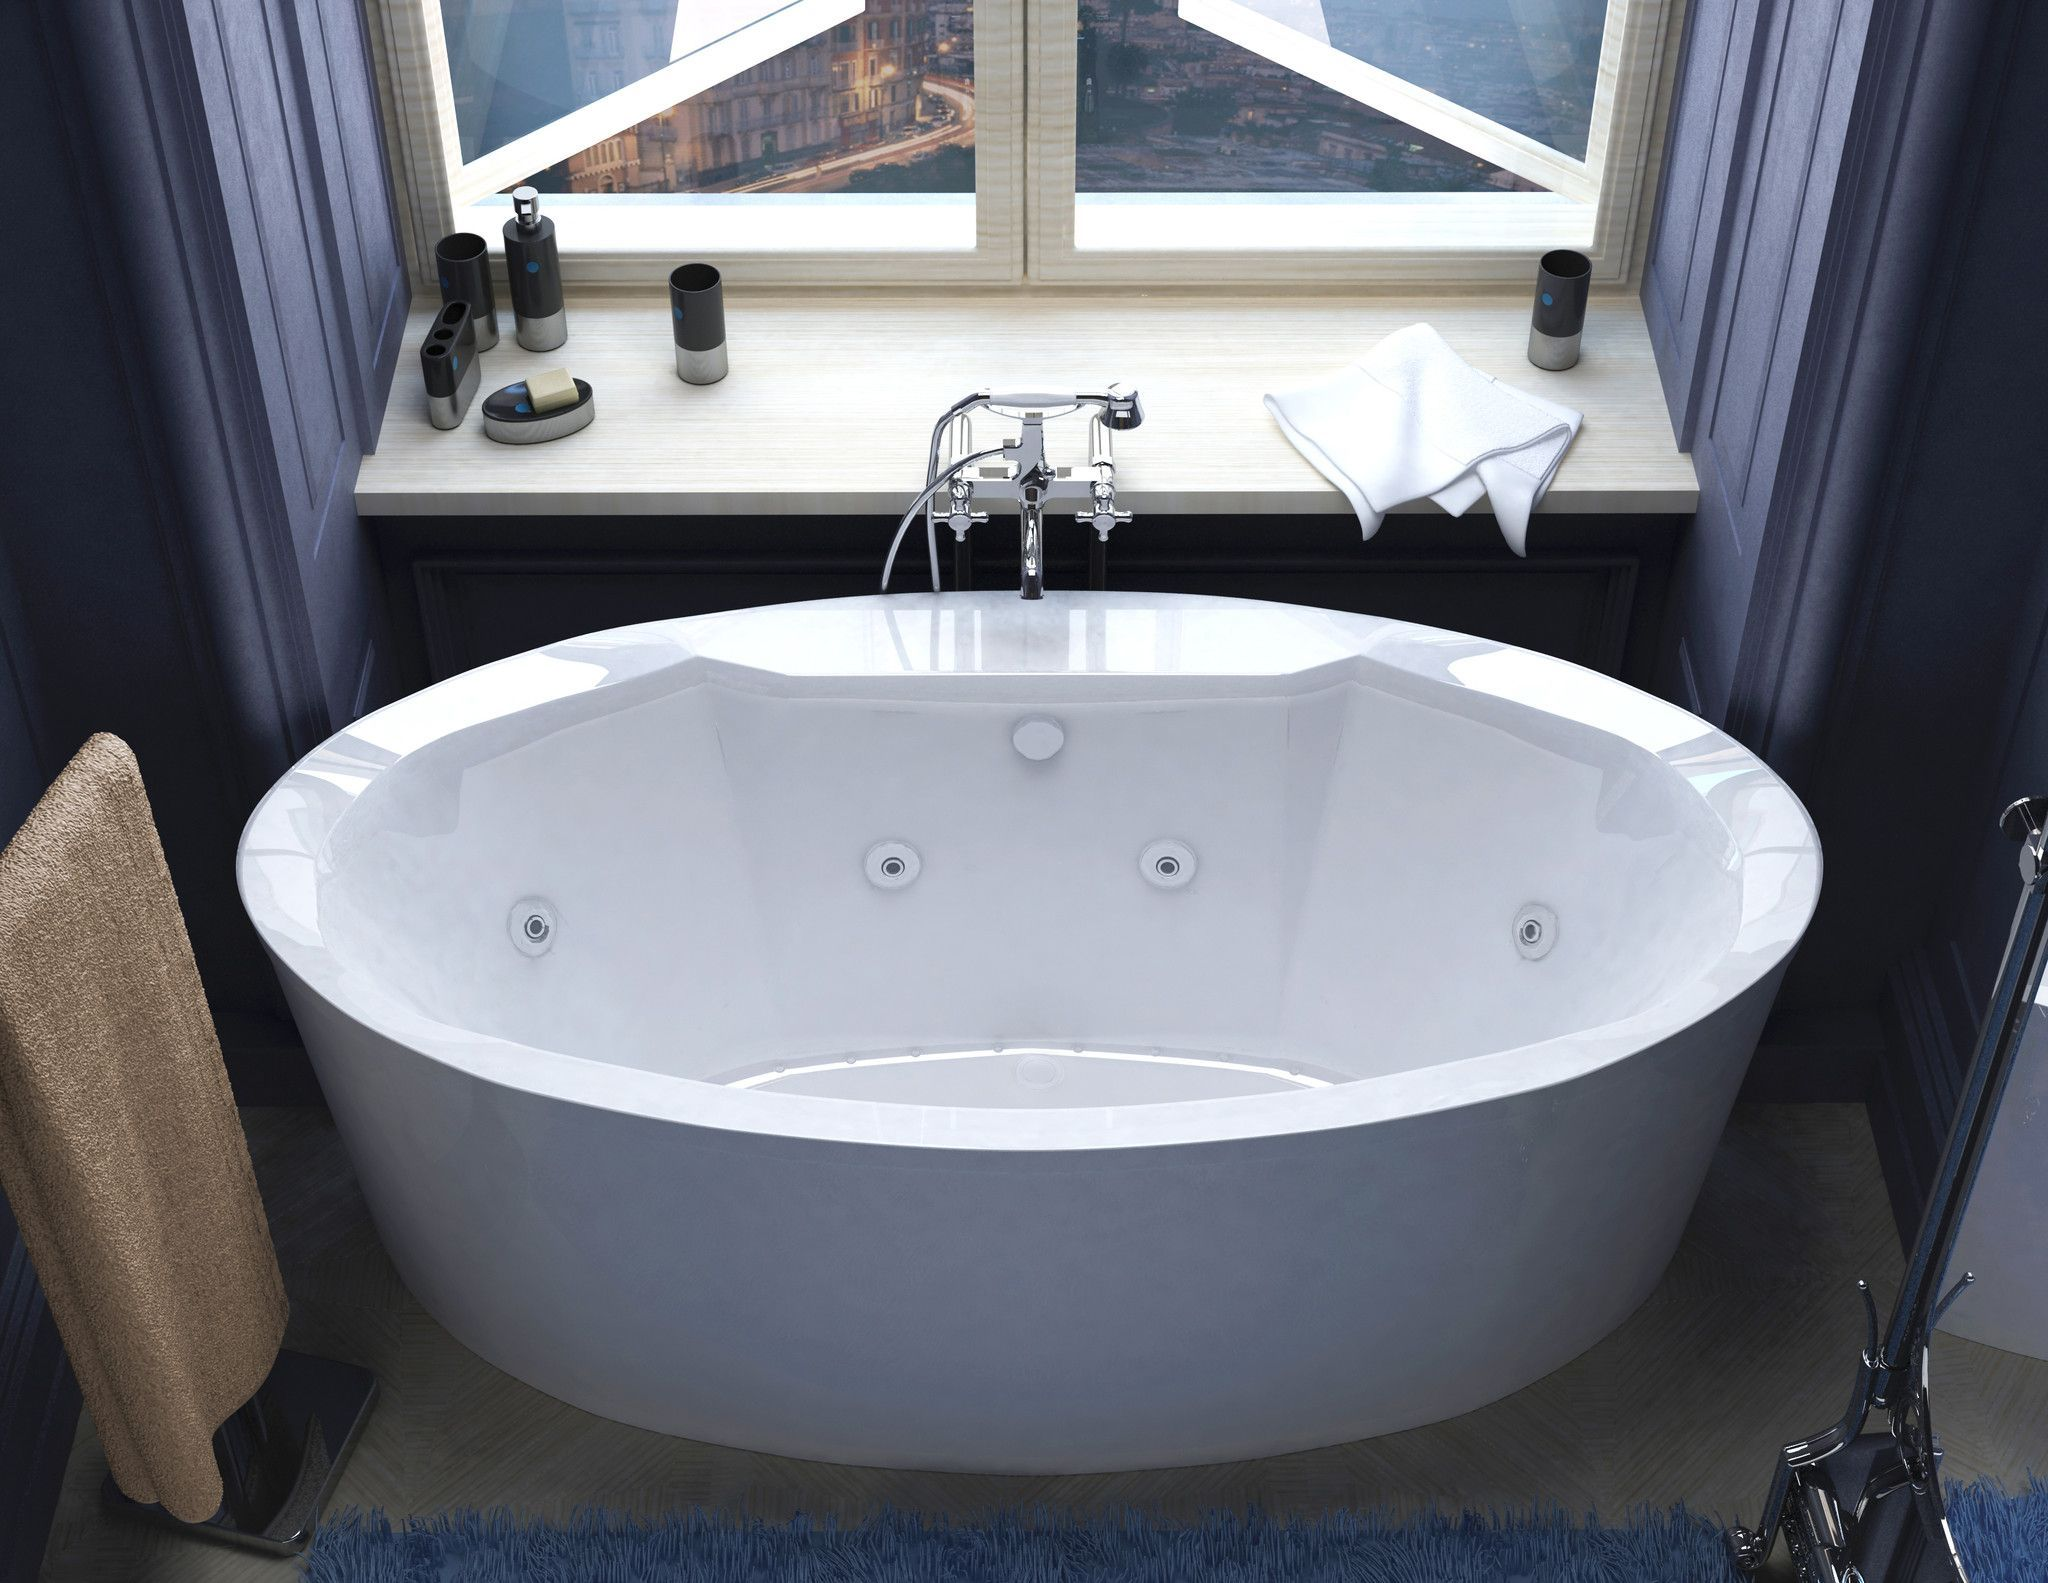 Venzi VZ3468SDX Grand Tour Sole 34 x 68 x 23 Oval Air & Whirlpool ...